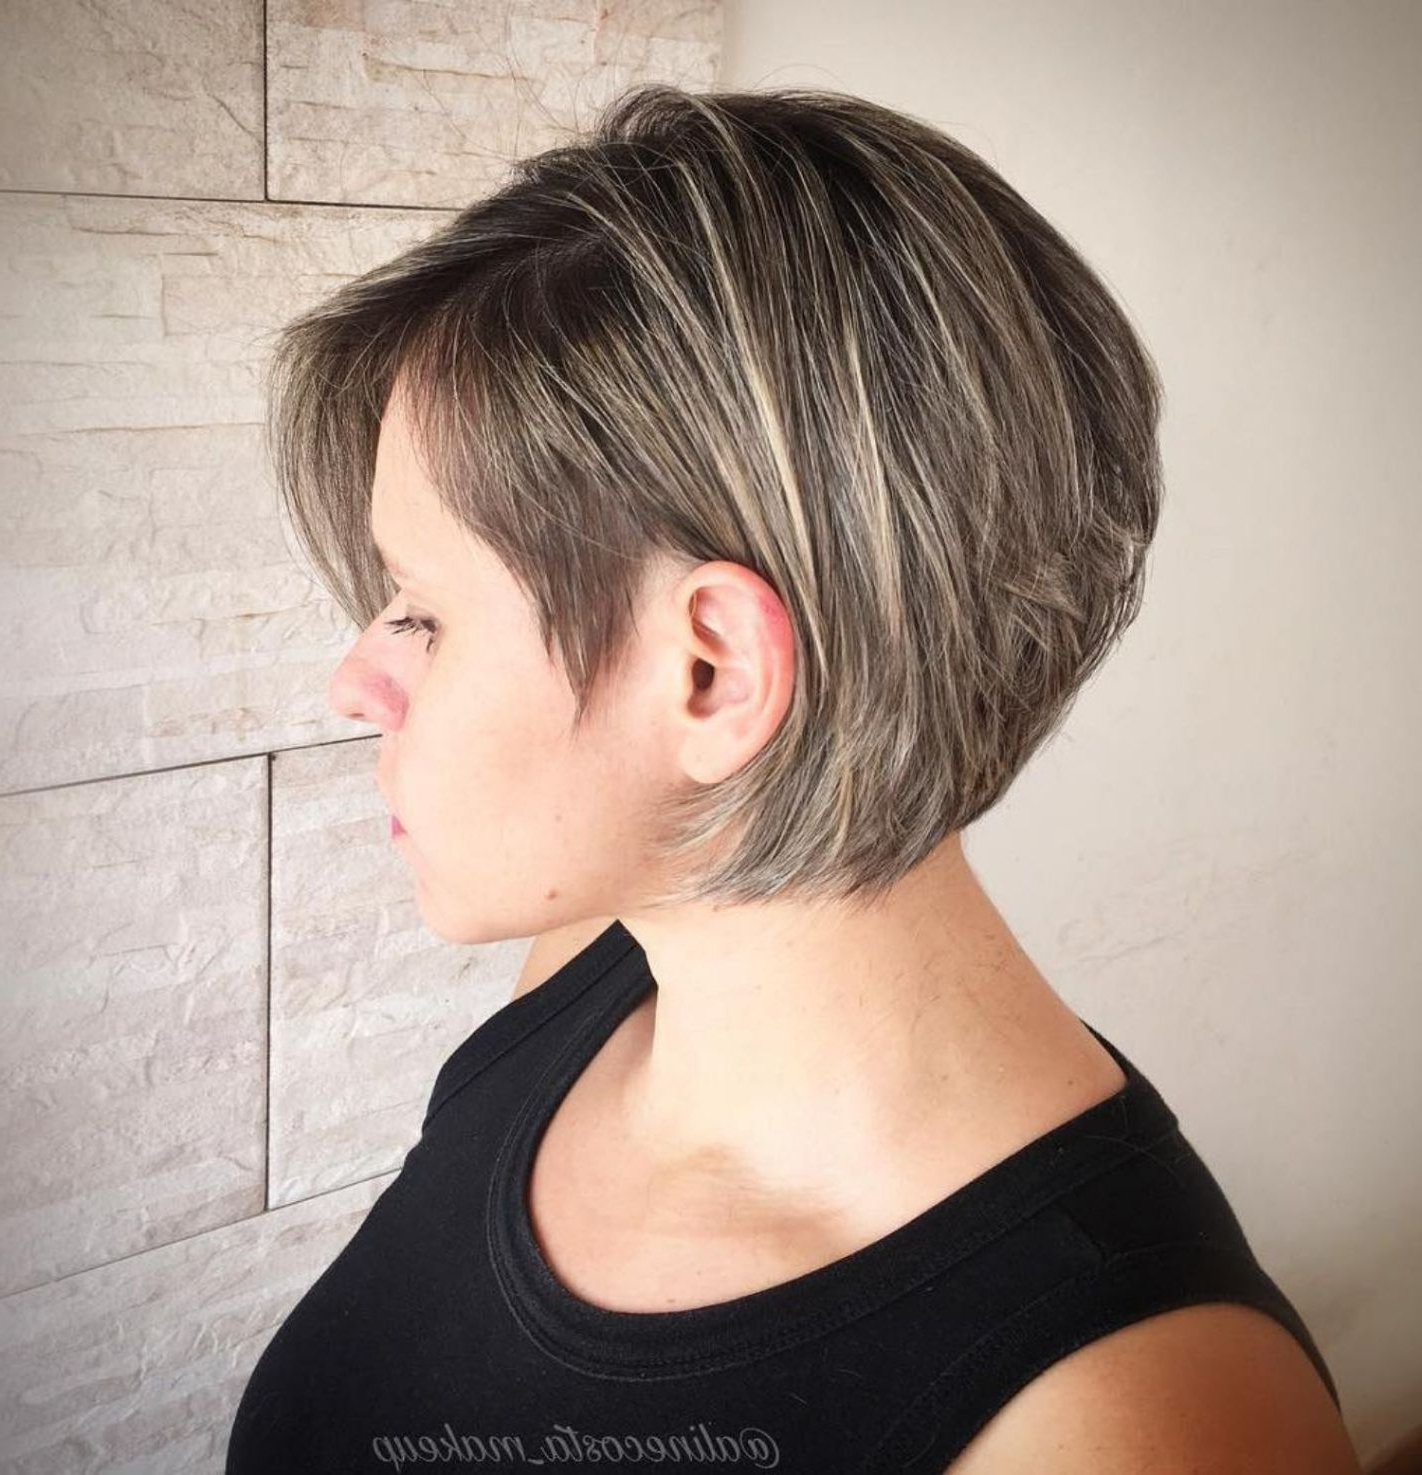 50 Trendy Inverted Bob Haircuts In 2018 | Hair Cuts | Pinterest In Sleek Rounded Inverted Bob Hairstyles (View 5 of 20)